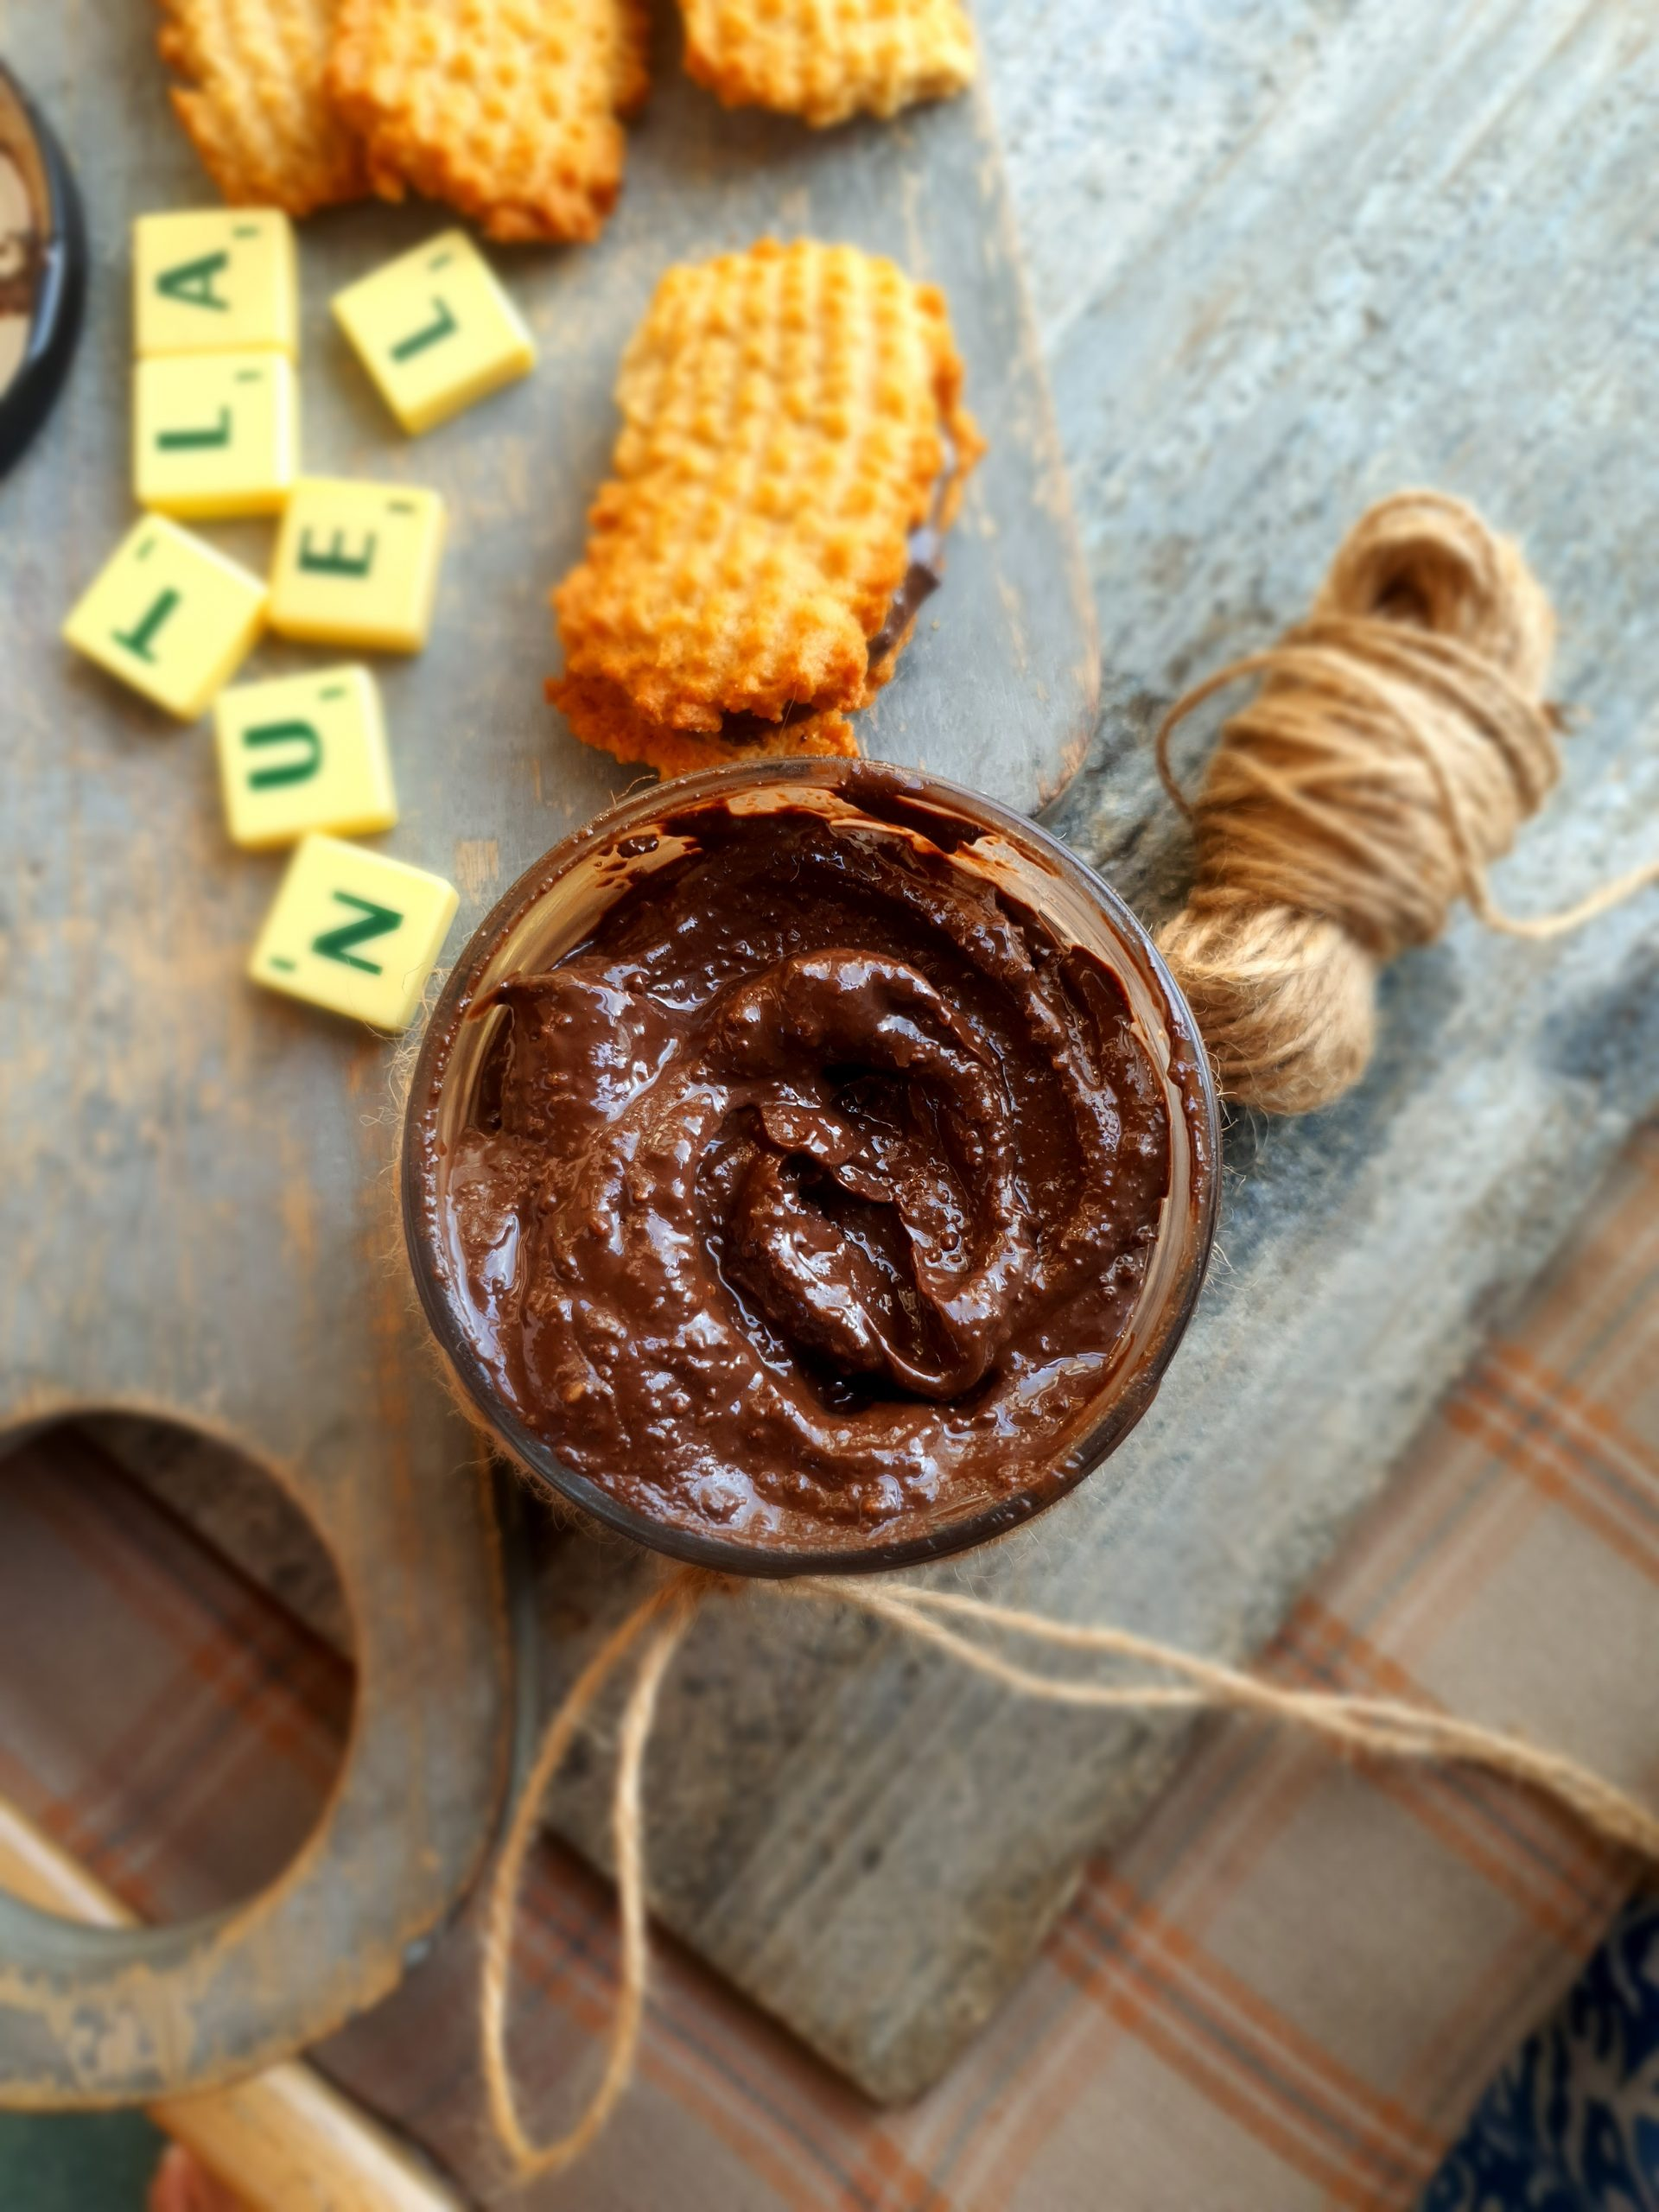 Nutella Chocolate spread….Homemade hazelnut-chocolate spread